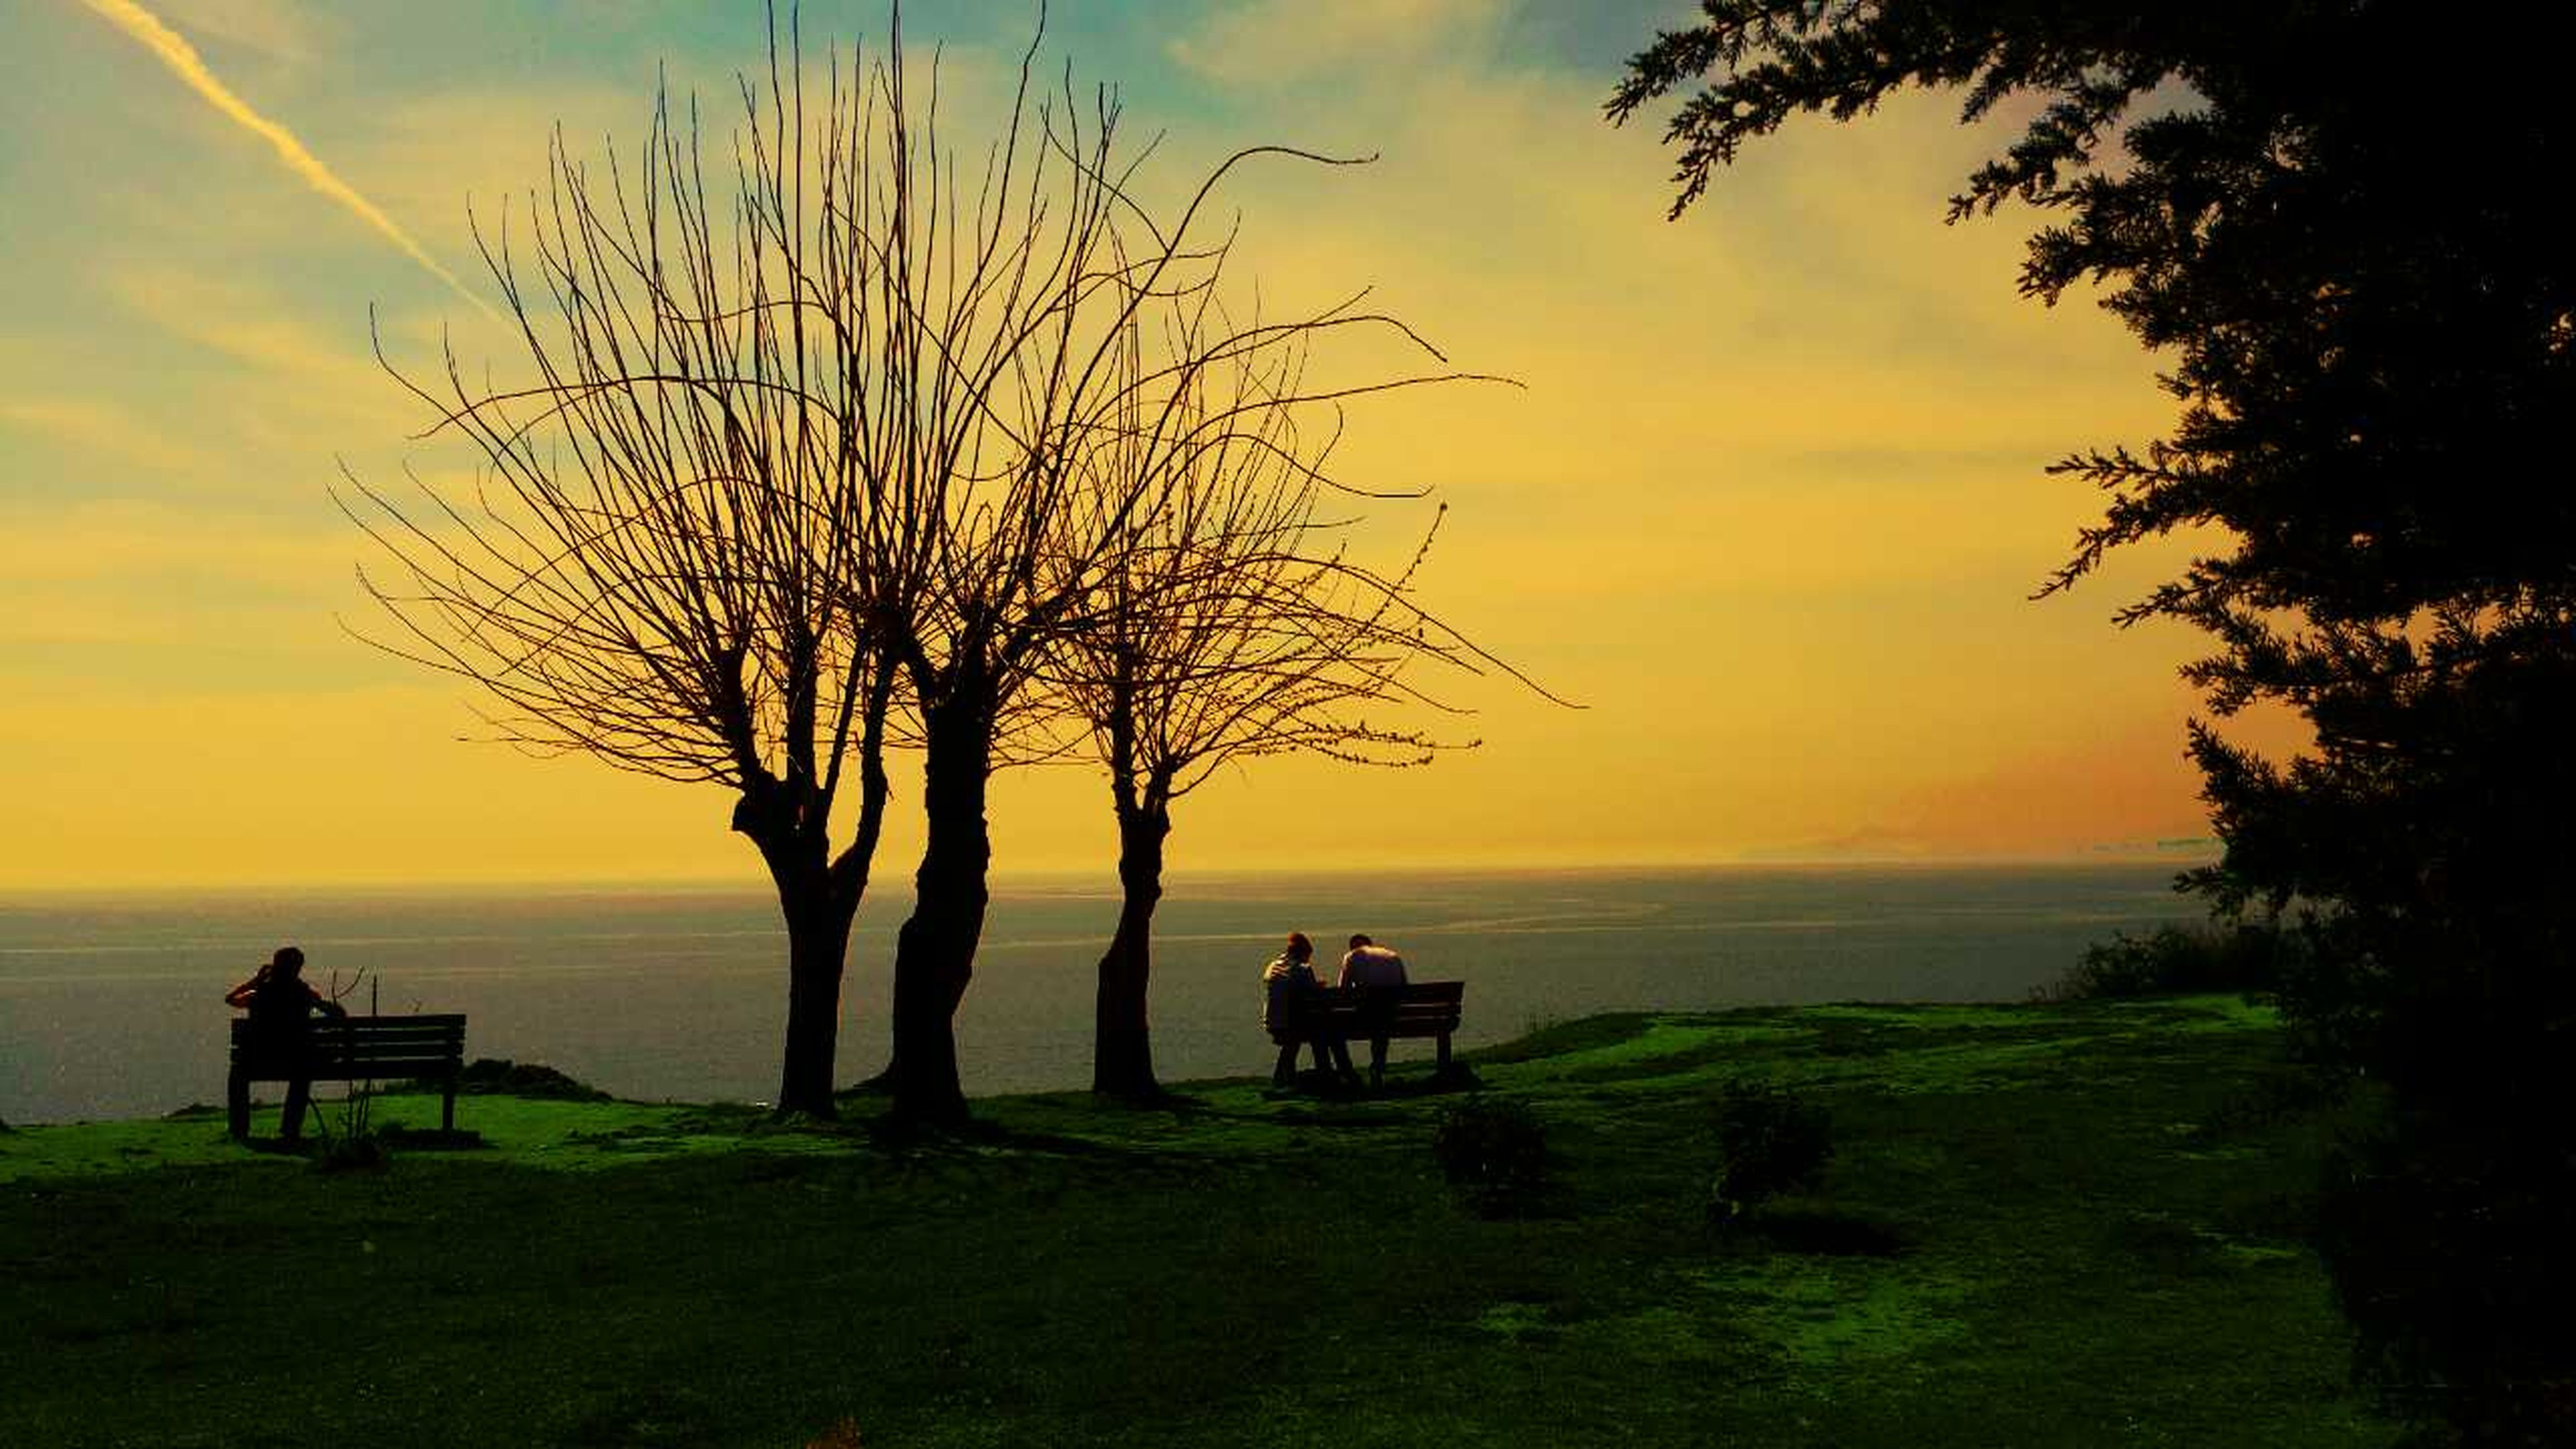 sunset, sky, tranquility, silhouette, tranquil scene, scenics, tree, beauty in nature, grass, horizon over water, nature, bench, orange color, landscape, idyllic, water, sea, cloud - sky, field, relaxation